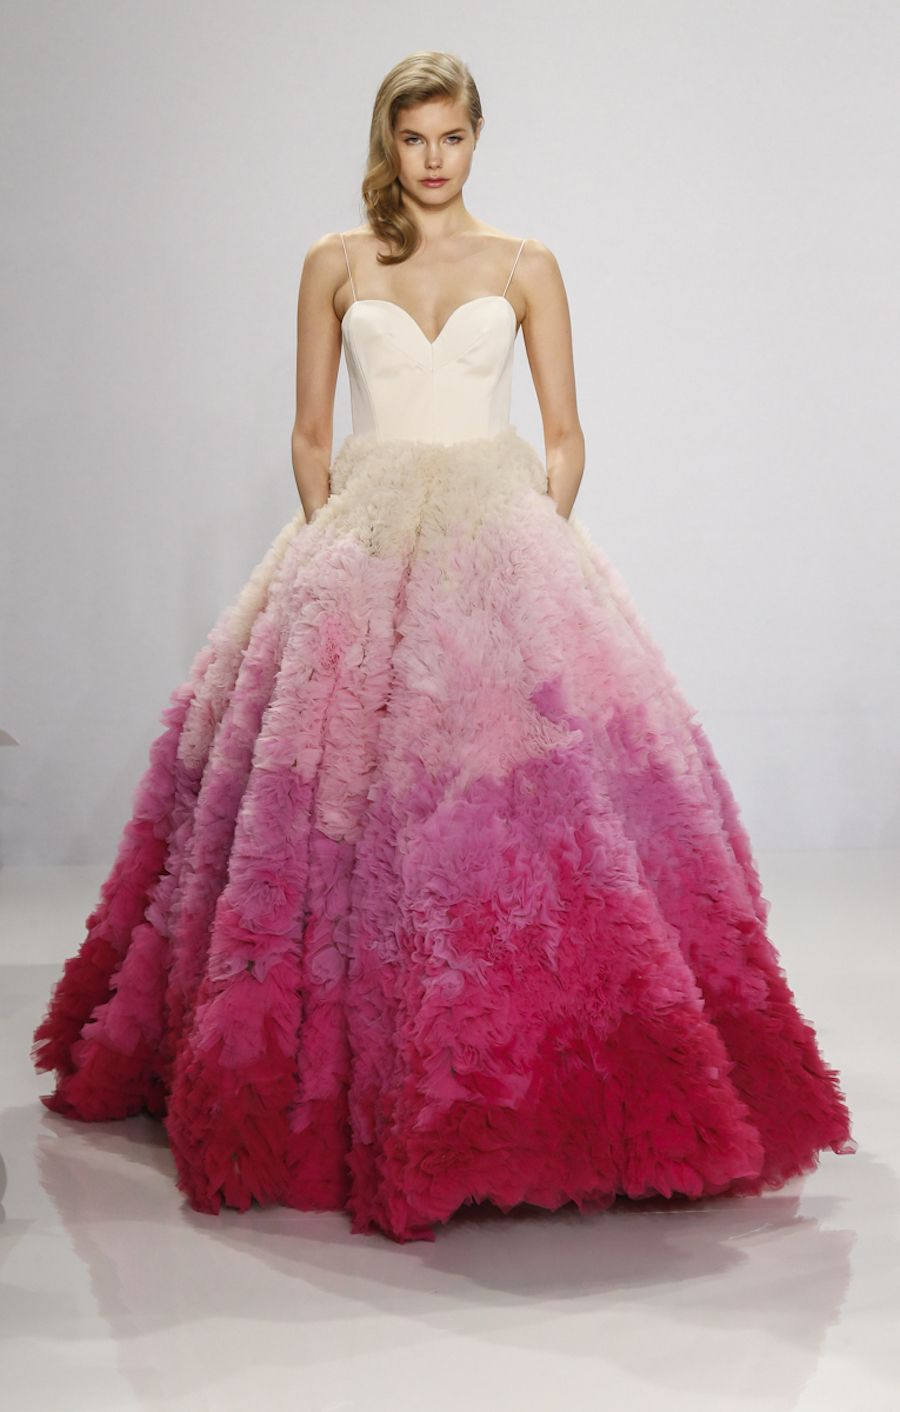 Ombre pink beauty from Christian Siriano for Kleinfeld: http://www ...